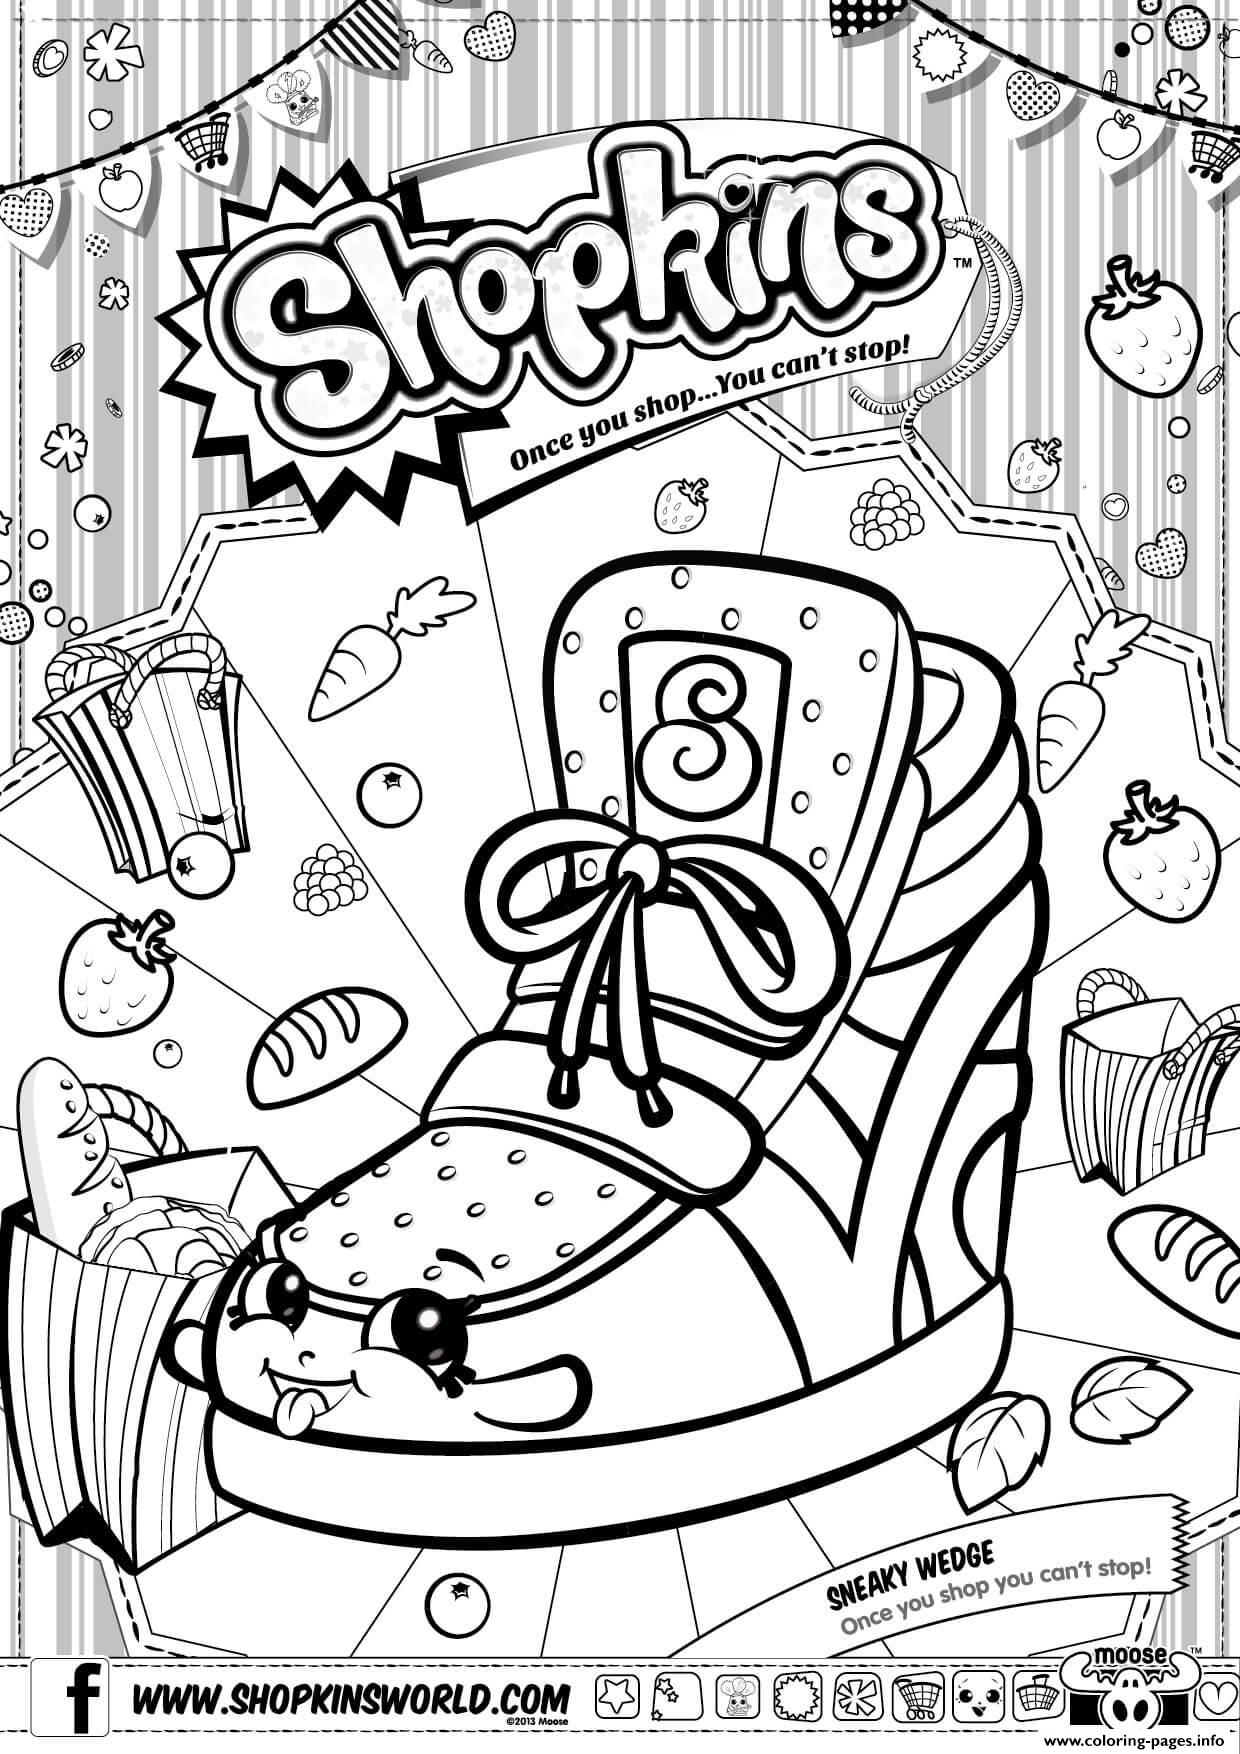 1240x1754 Shopkins Season Coloring Pages Preschool To Amusing Draw Paint